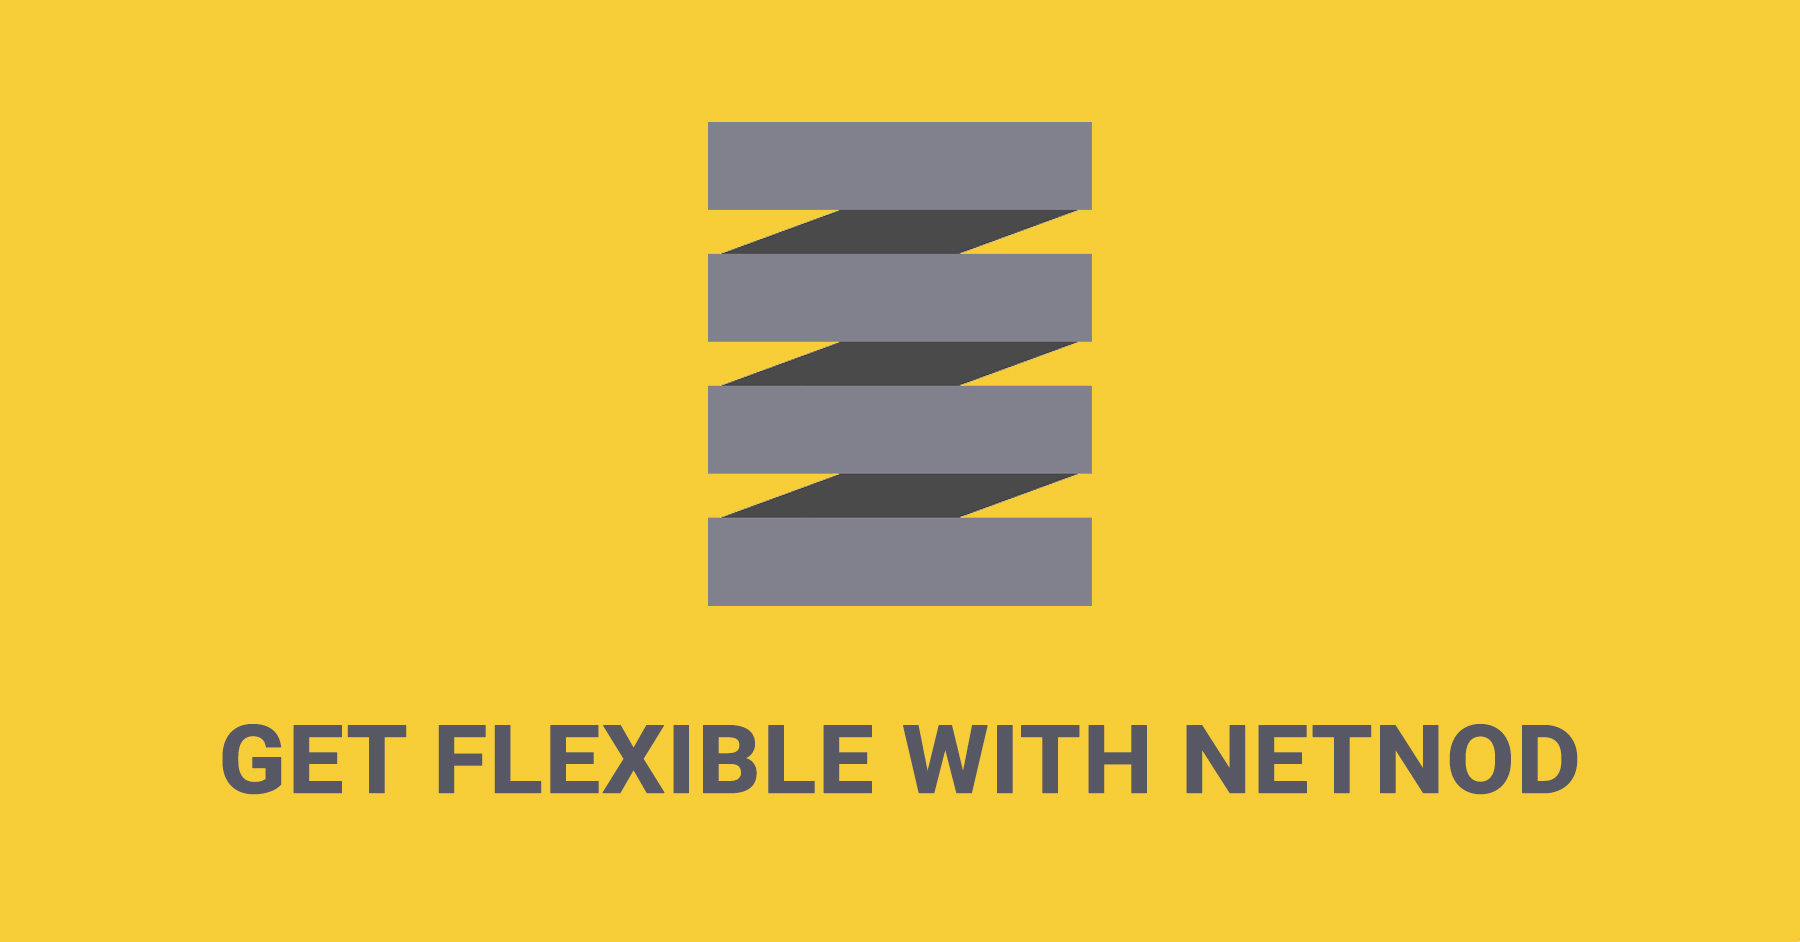 Get flexible with netnod